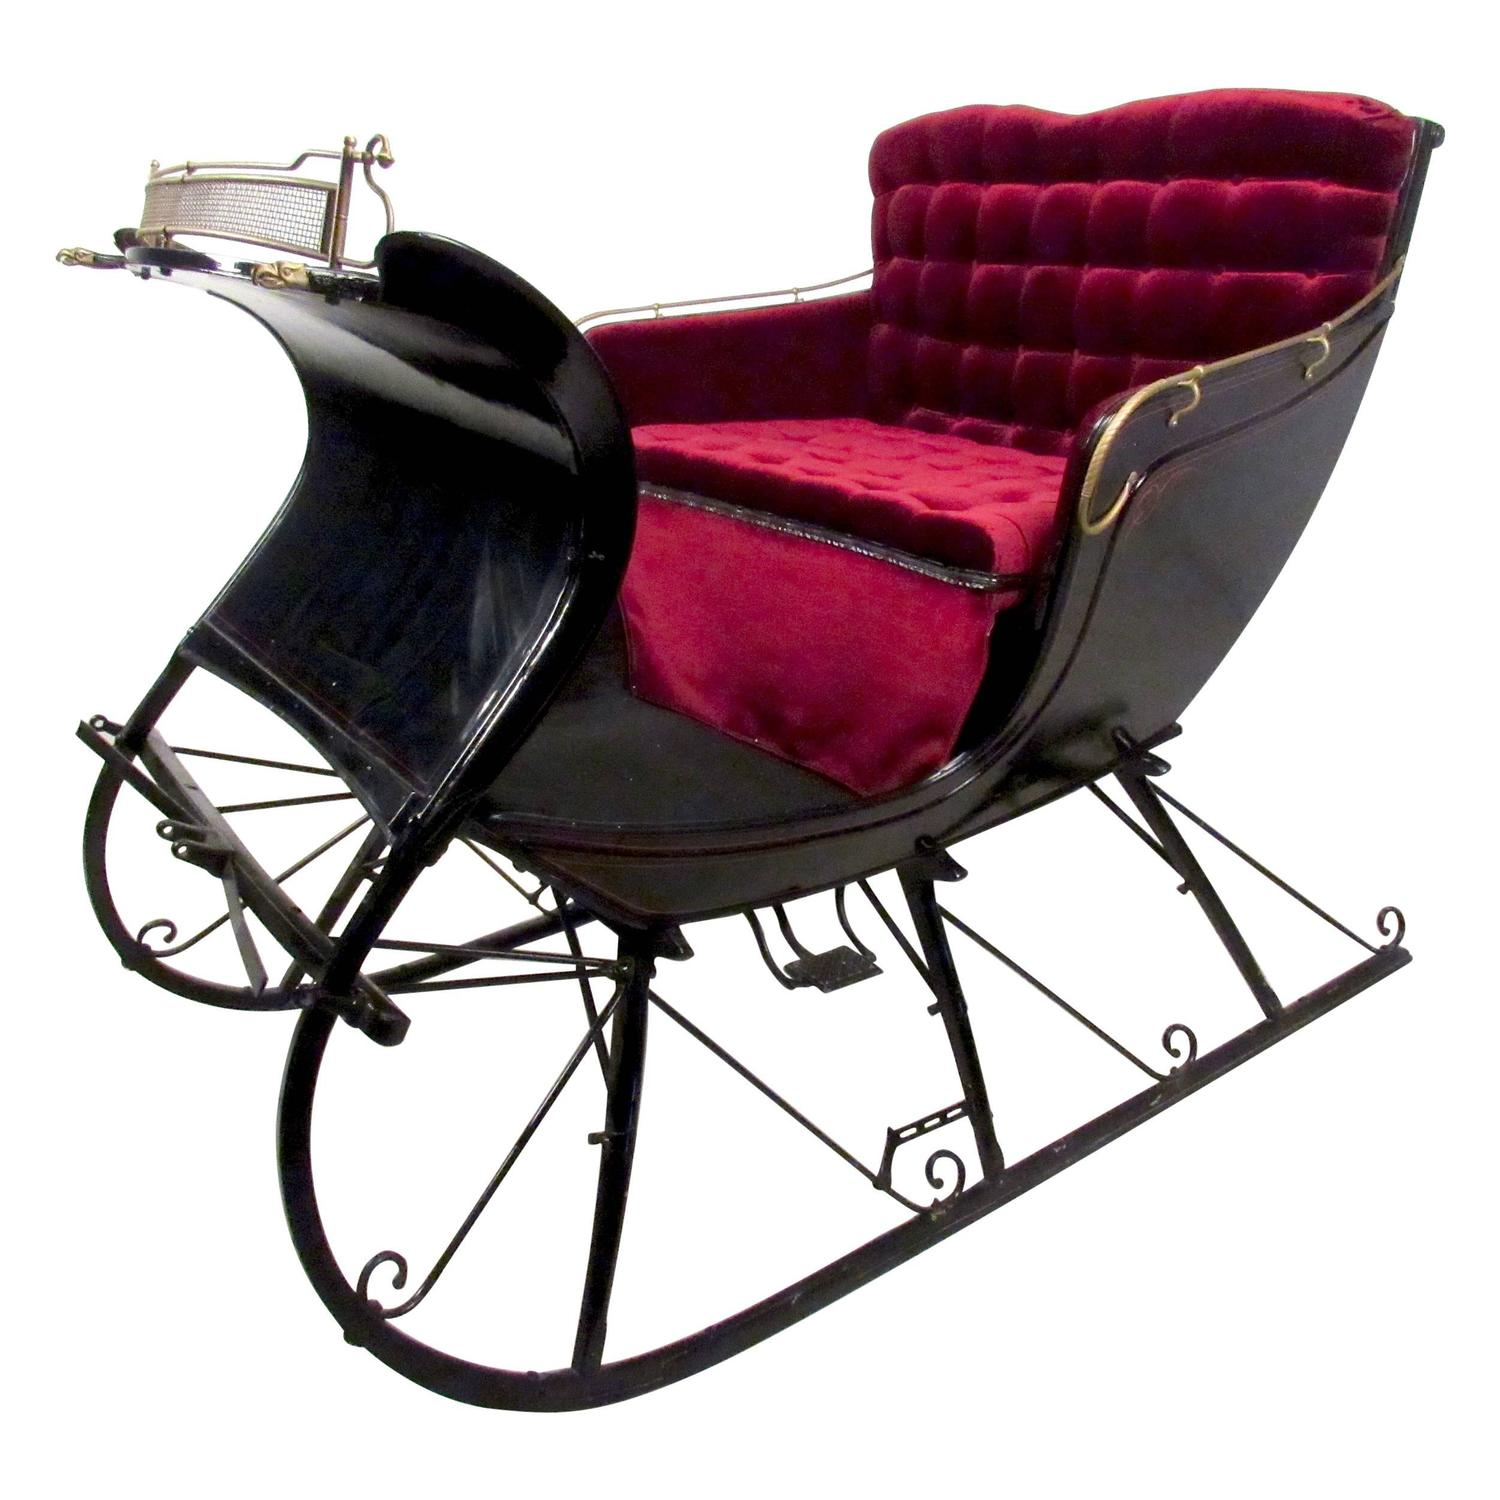 Stylish Vintage Horse Drawn Cutter Sleigh At 1stdibs